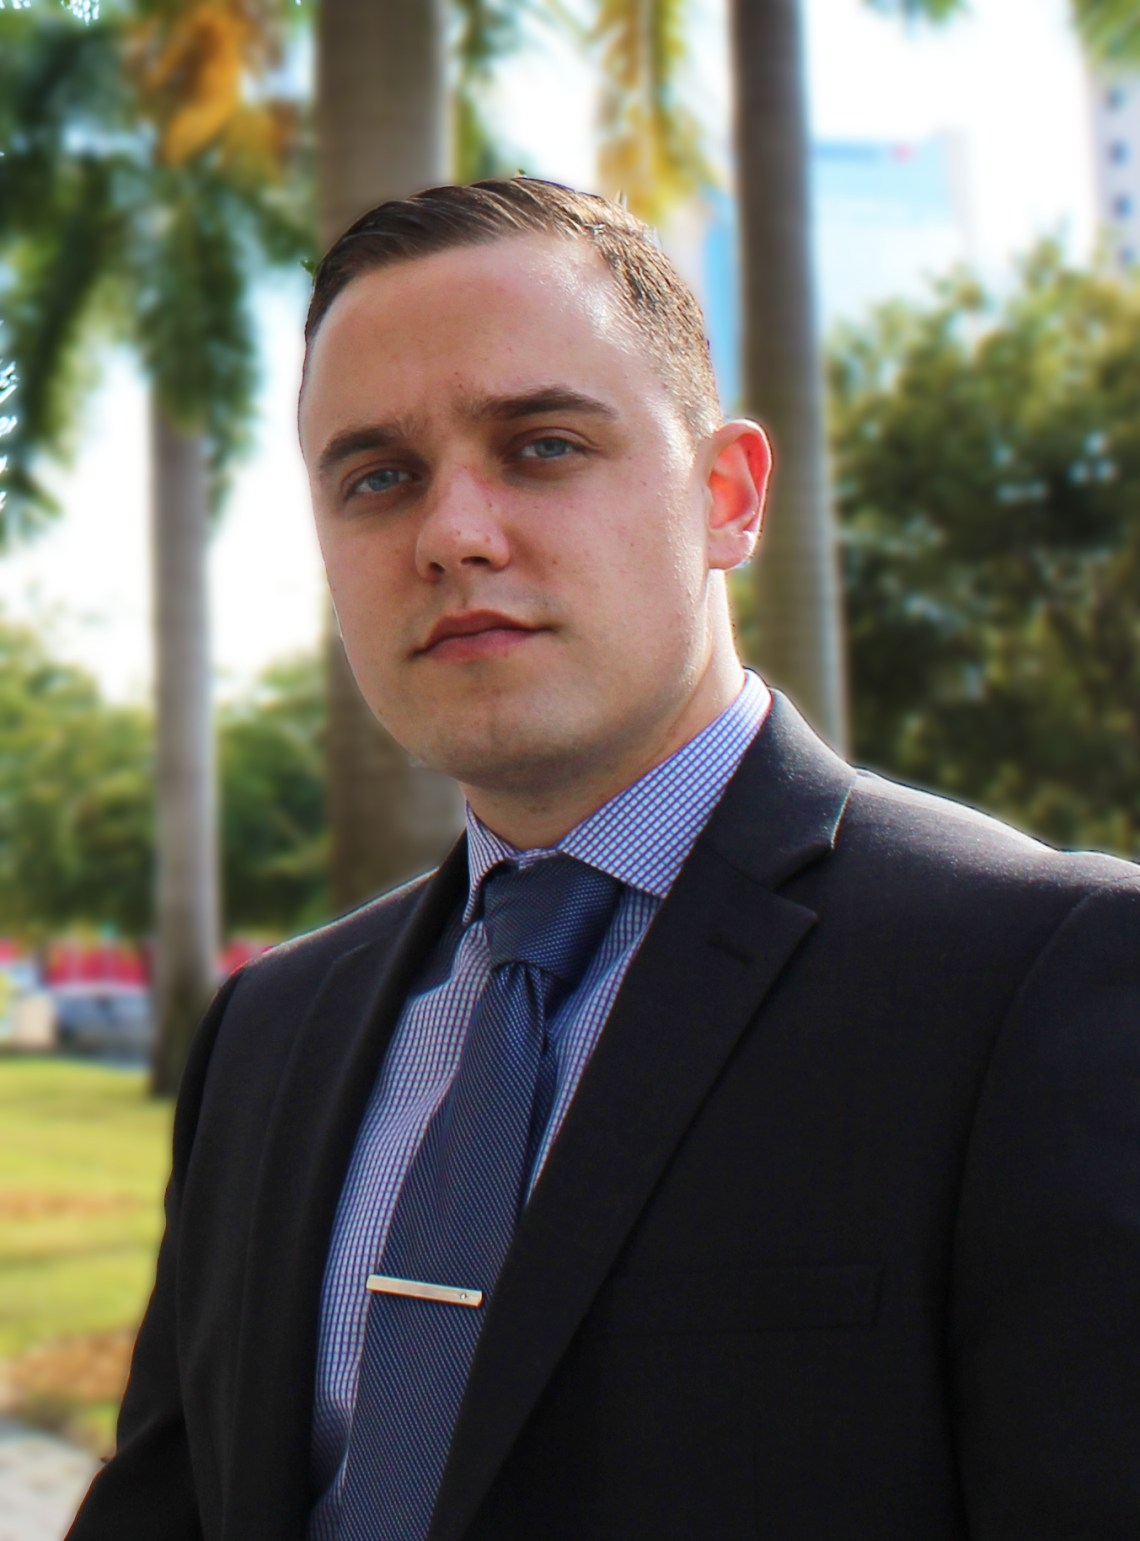 kendall car accident lawyer